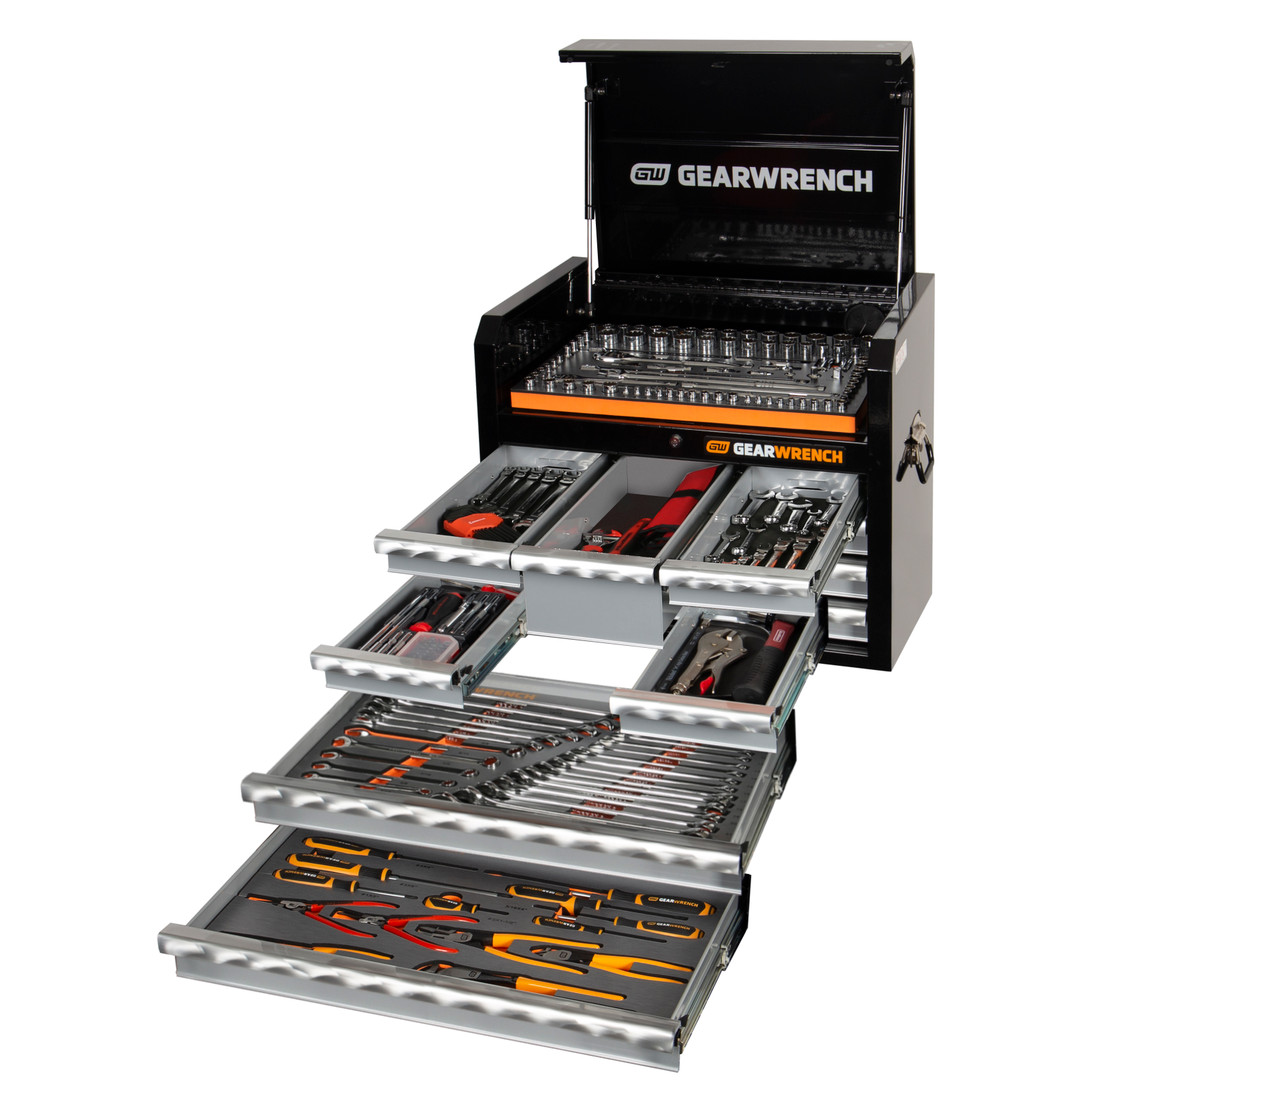 Gearwrench 326 piece tool kit product code 89915